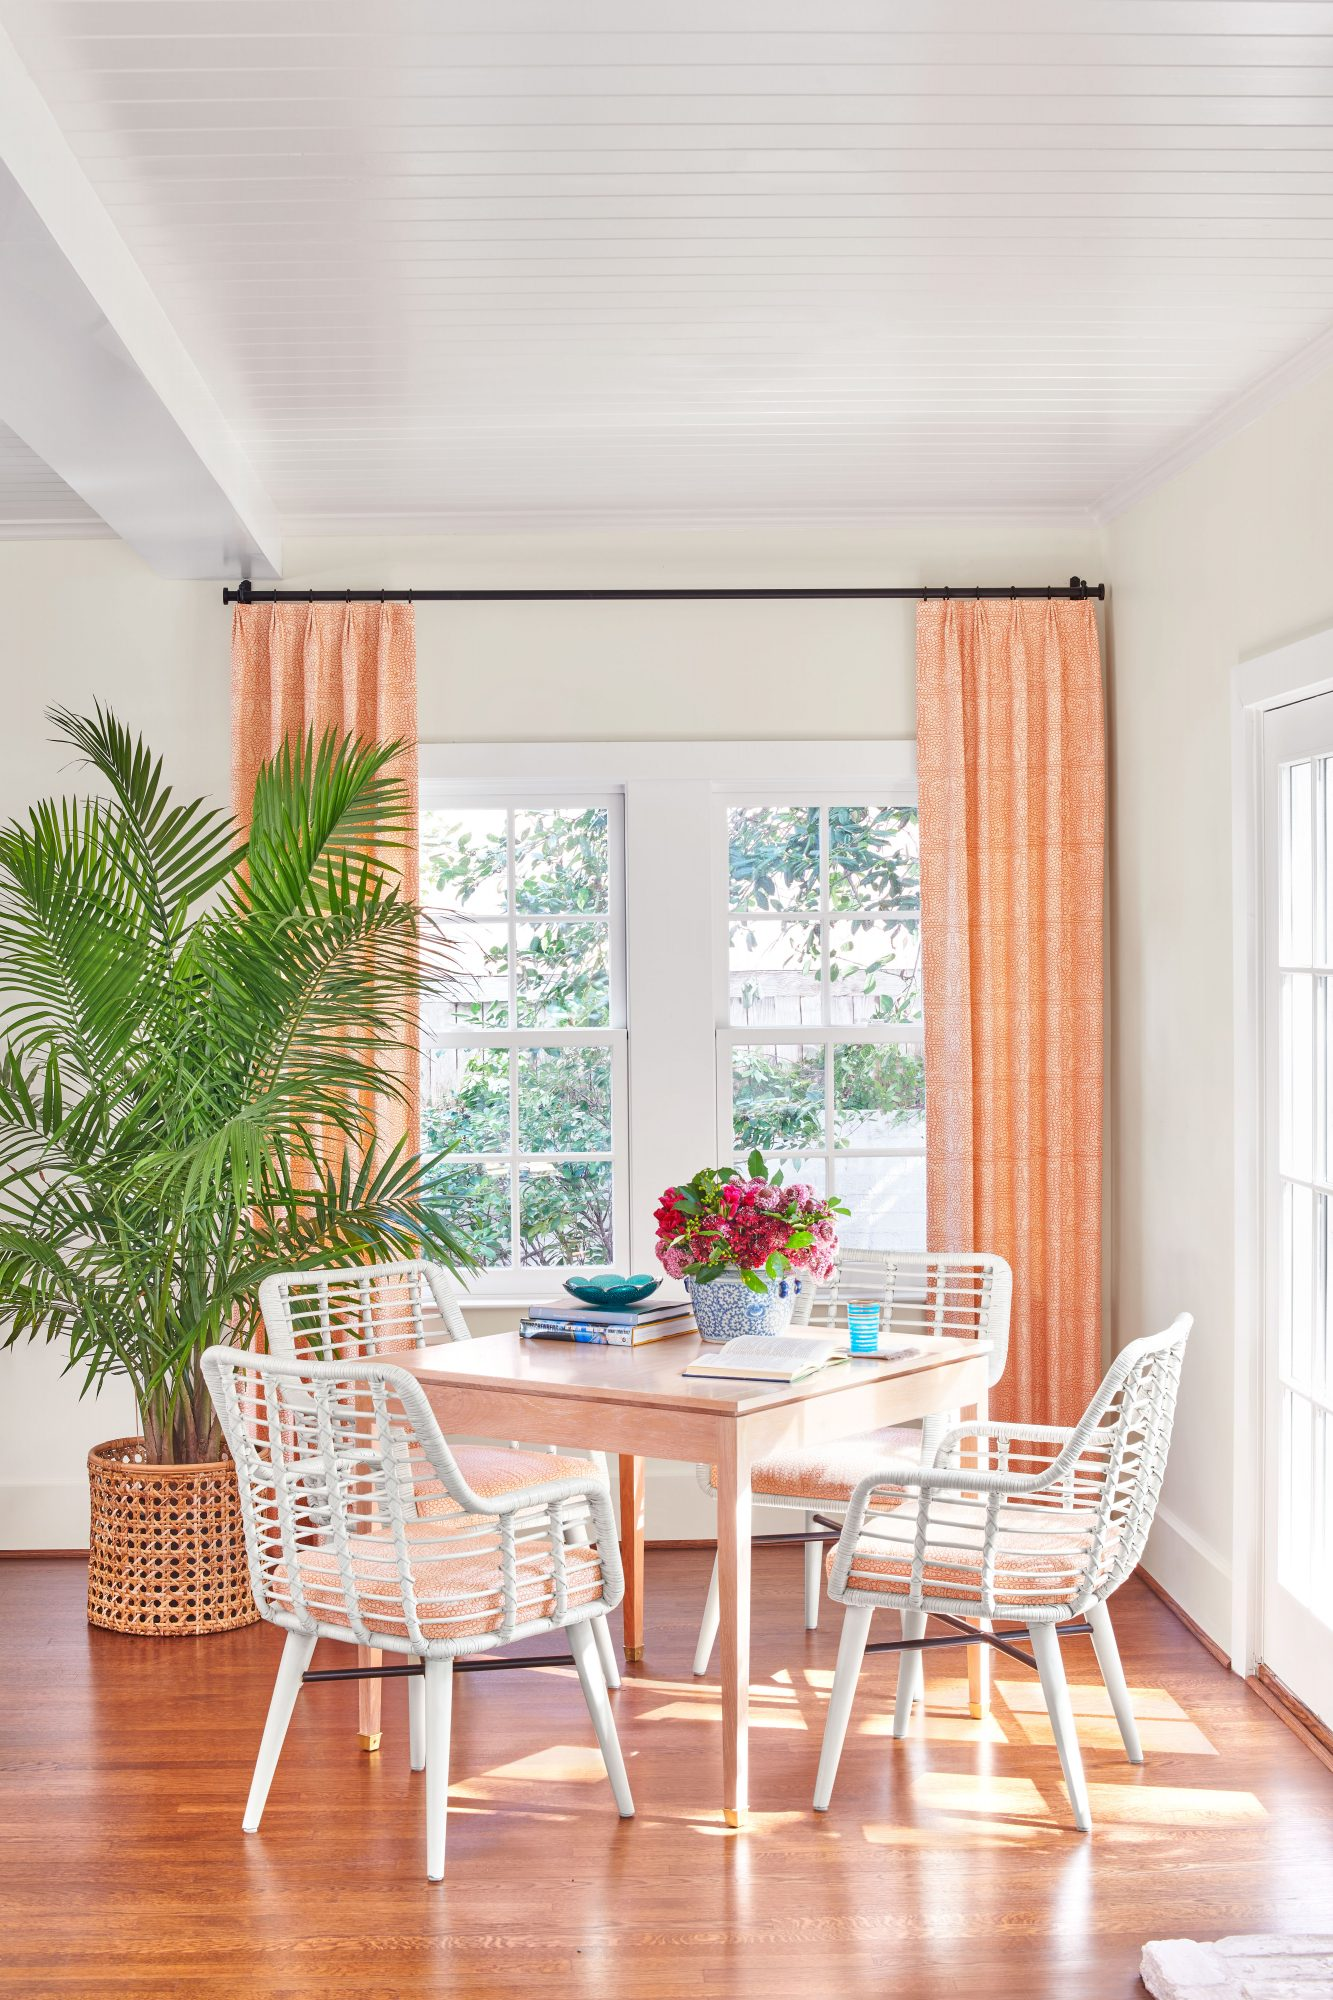 Card table in white room with orange curtains and white chairs